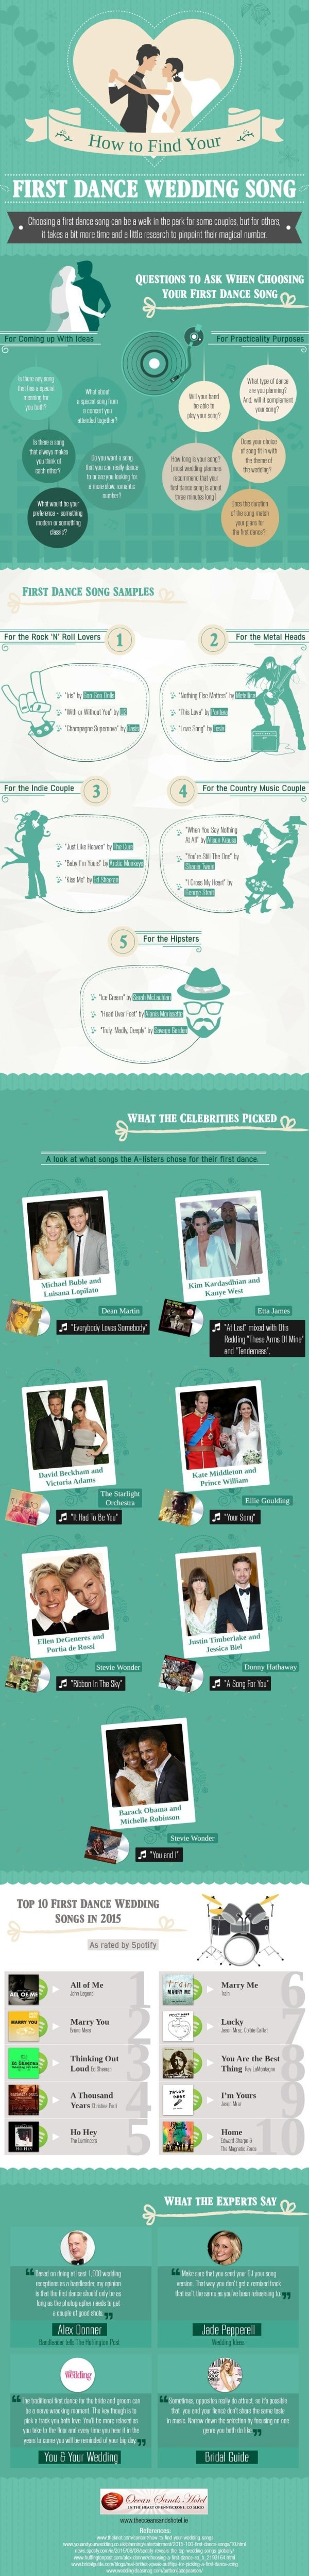 First-Dance-Wedding-Song-Infographic